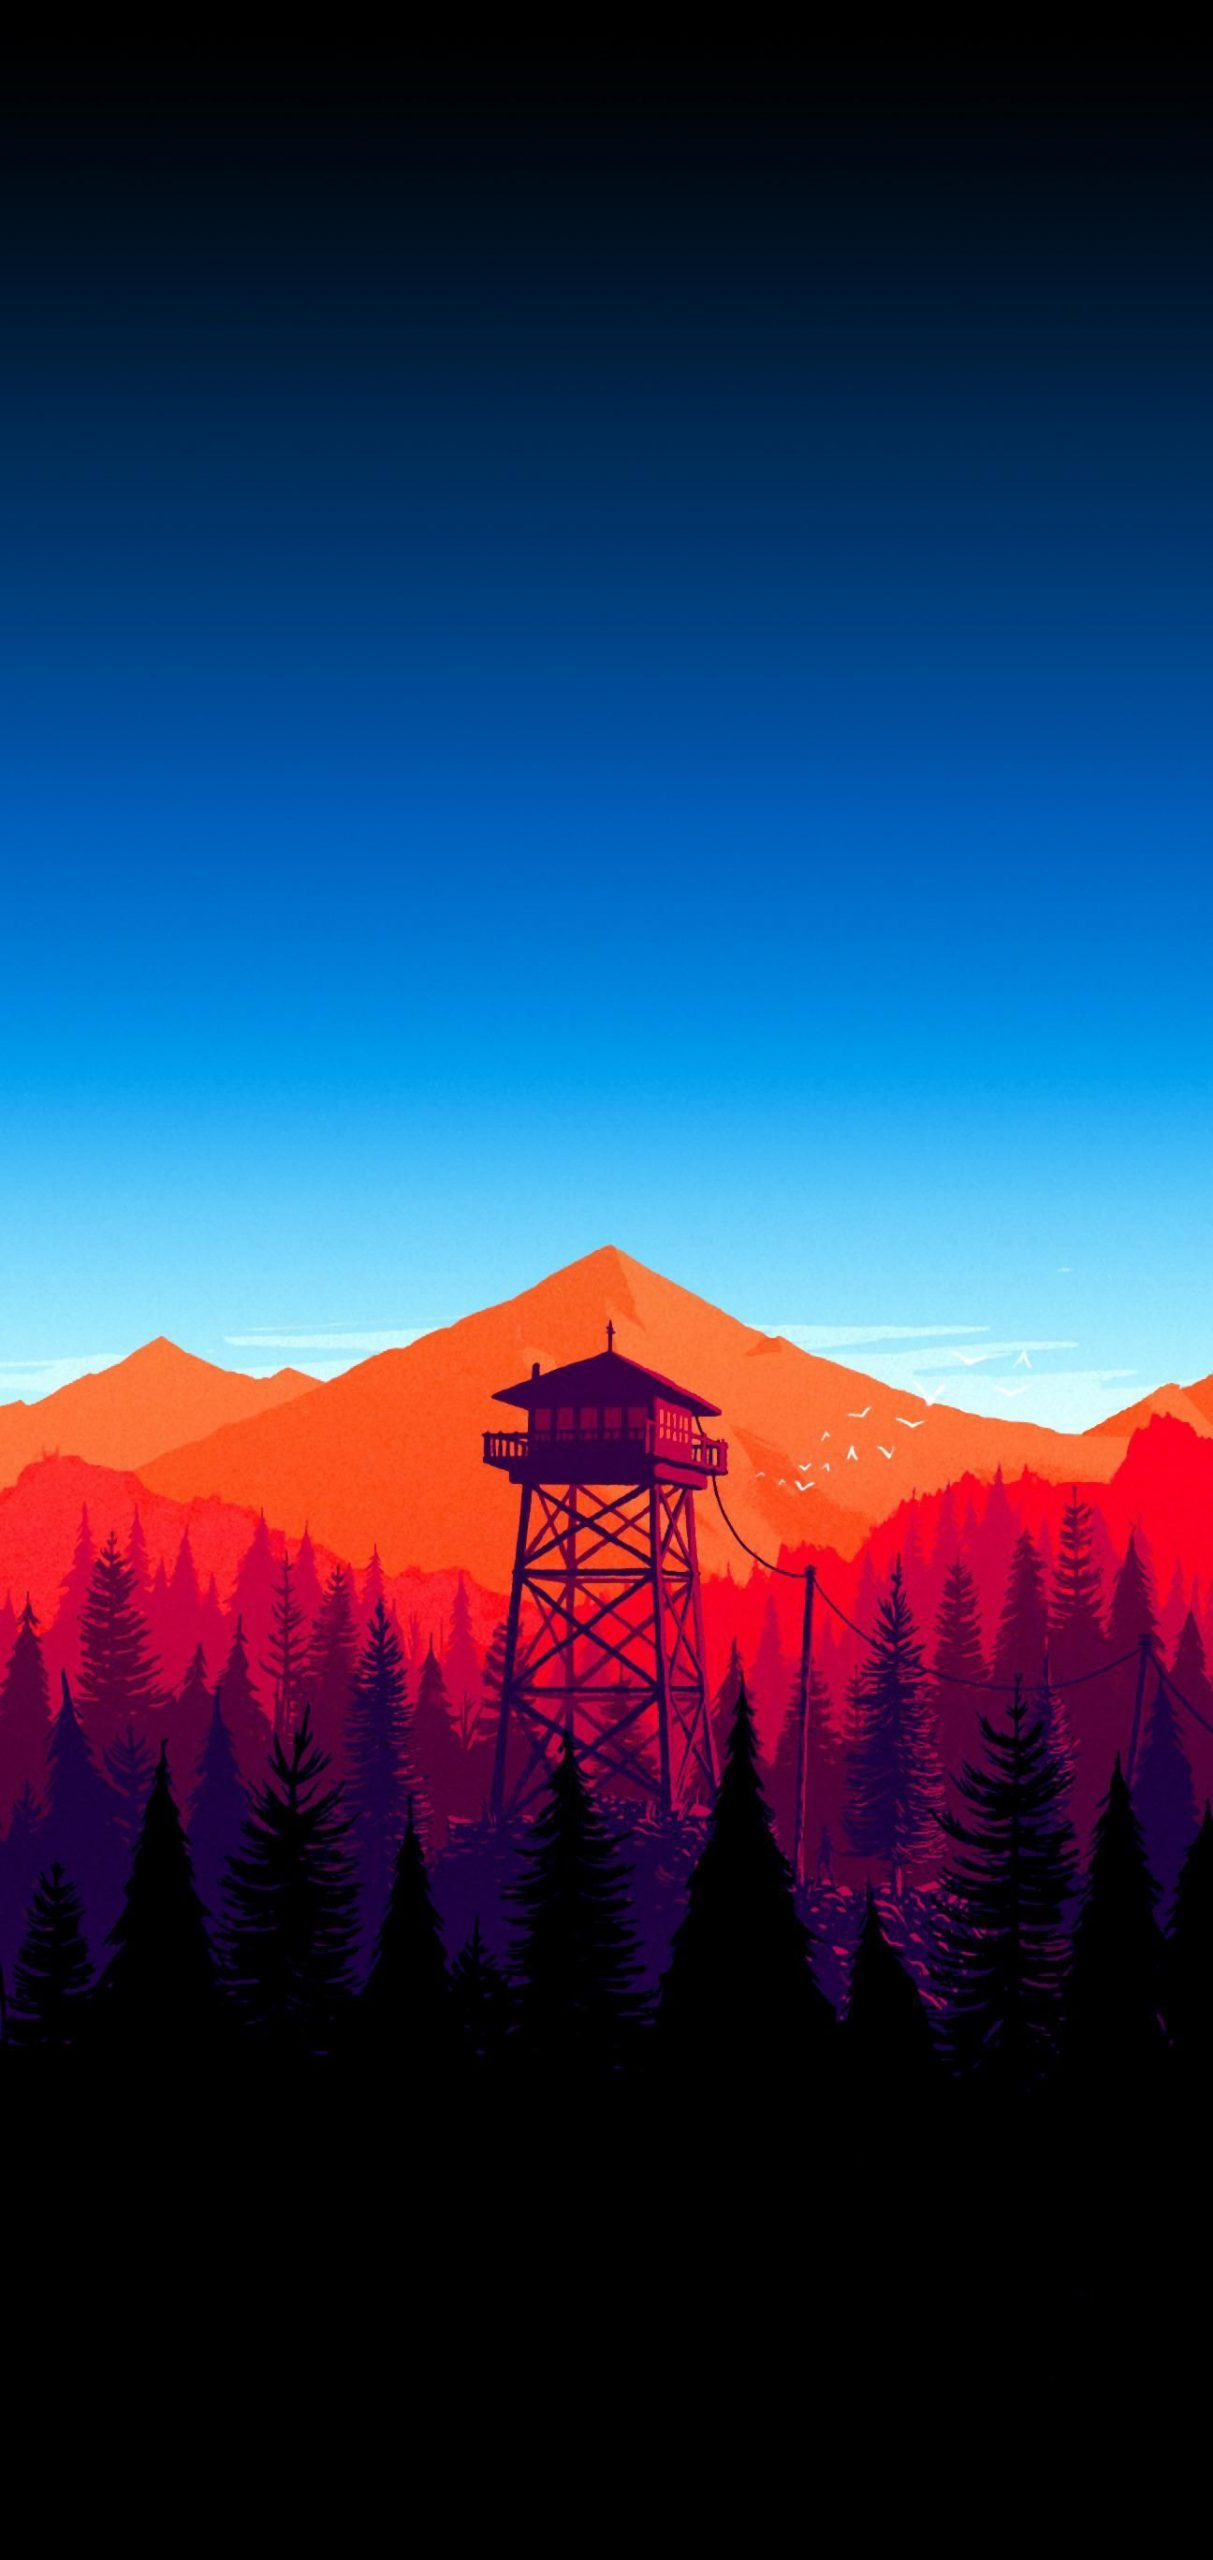 Firewatch also makes for an awesome wallpaper